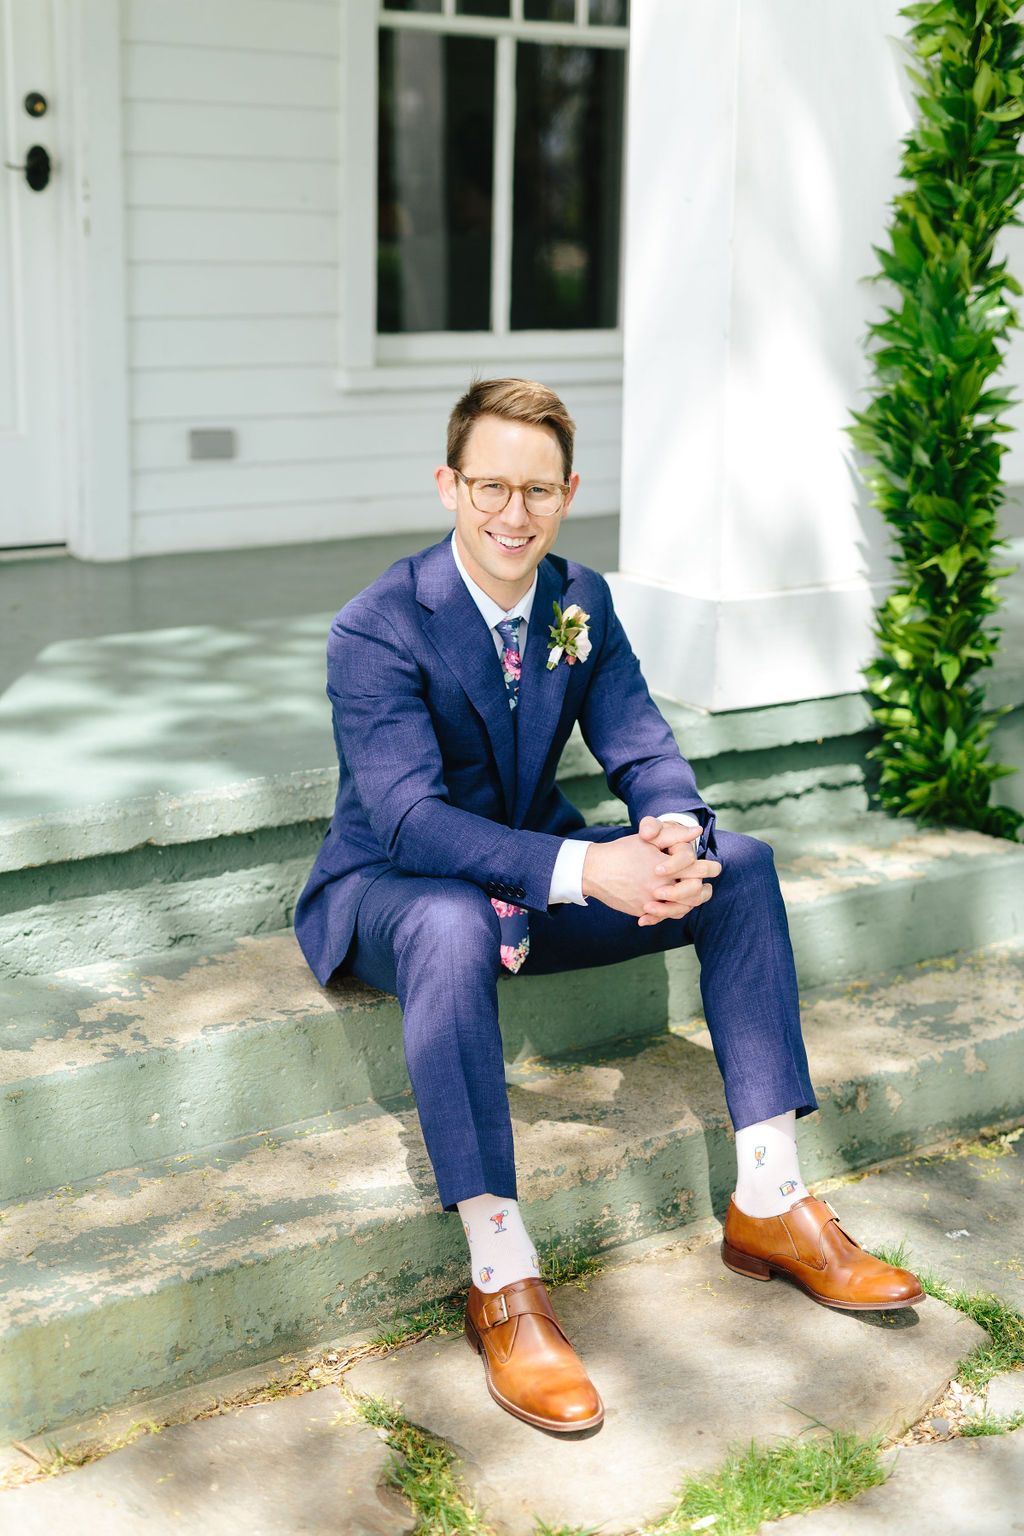 Groom in blue suit with floral tie - Preppy spring wedding at Zingerman's Cornman Farms - Leah E. Moss Designs - photo by Katie Grace Photography